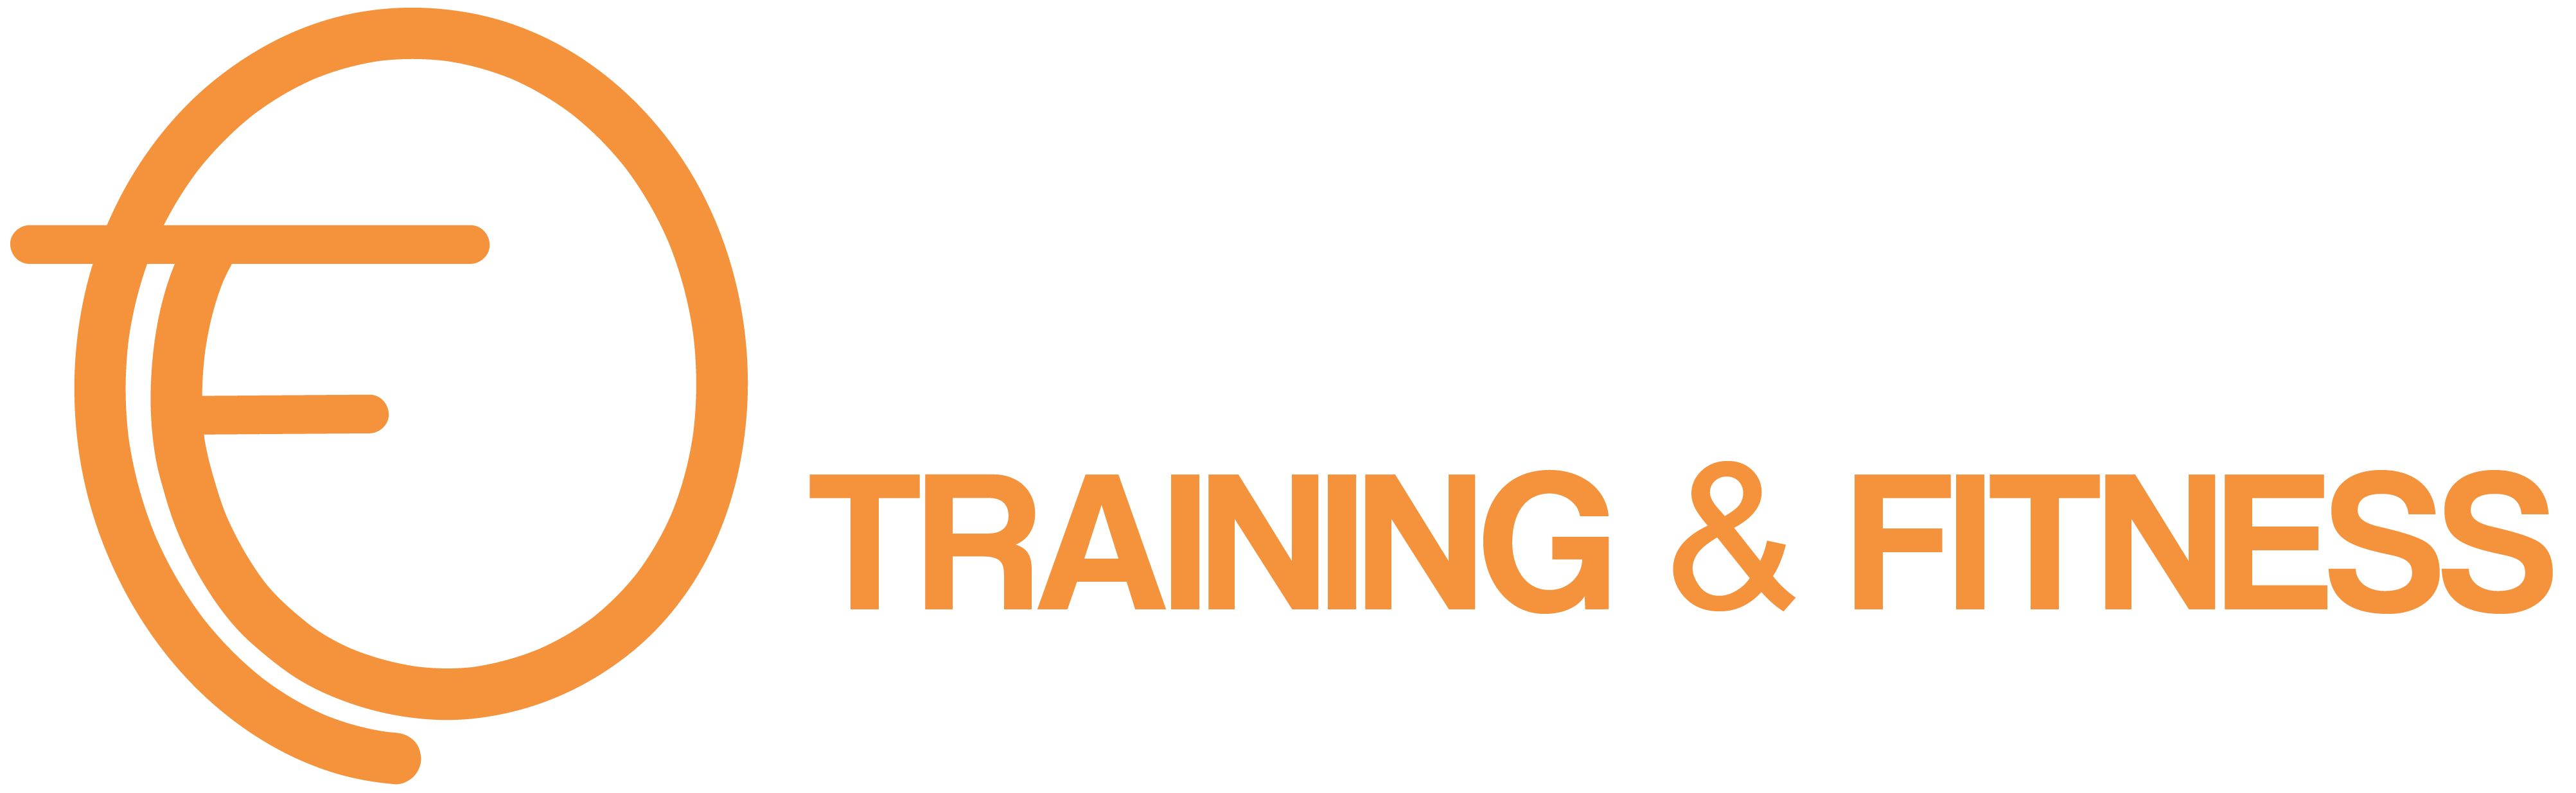 Offitcina Training & Fitness